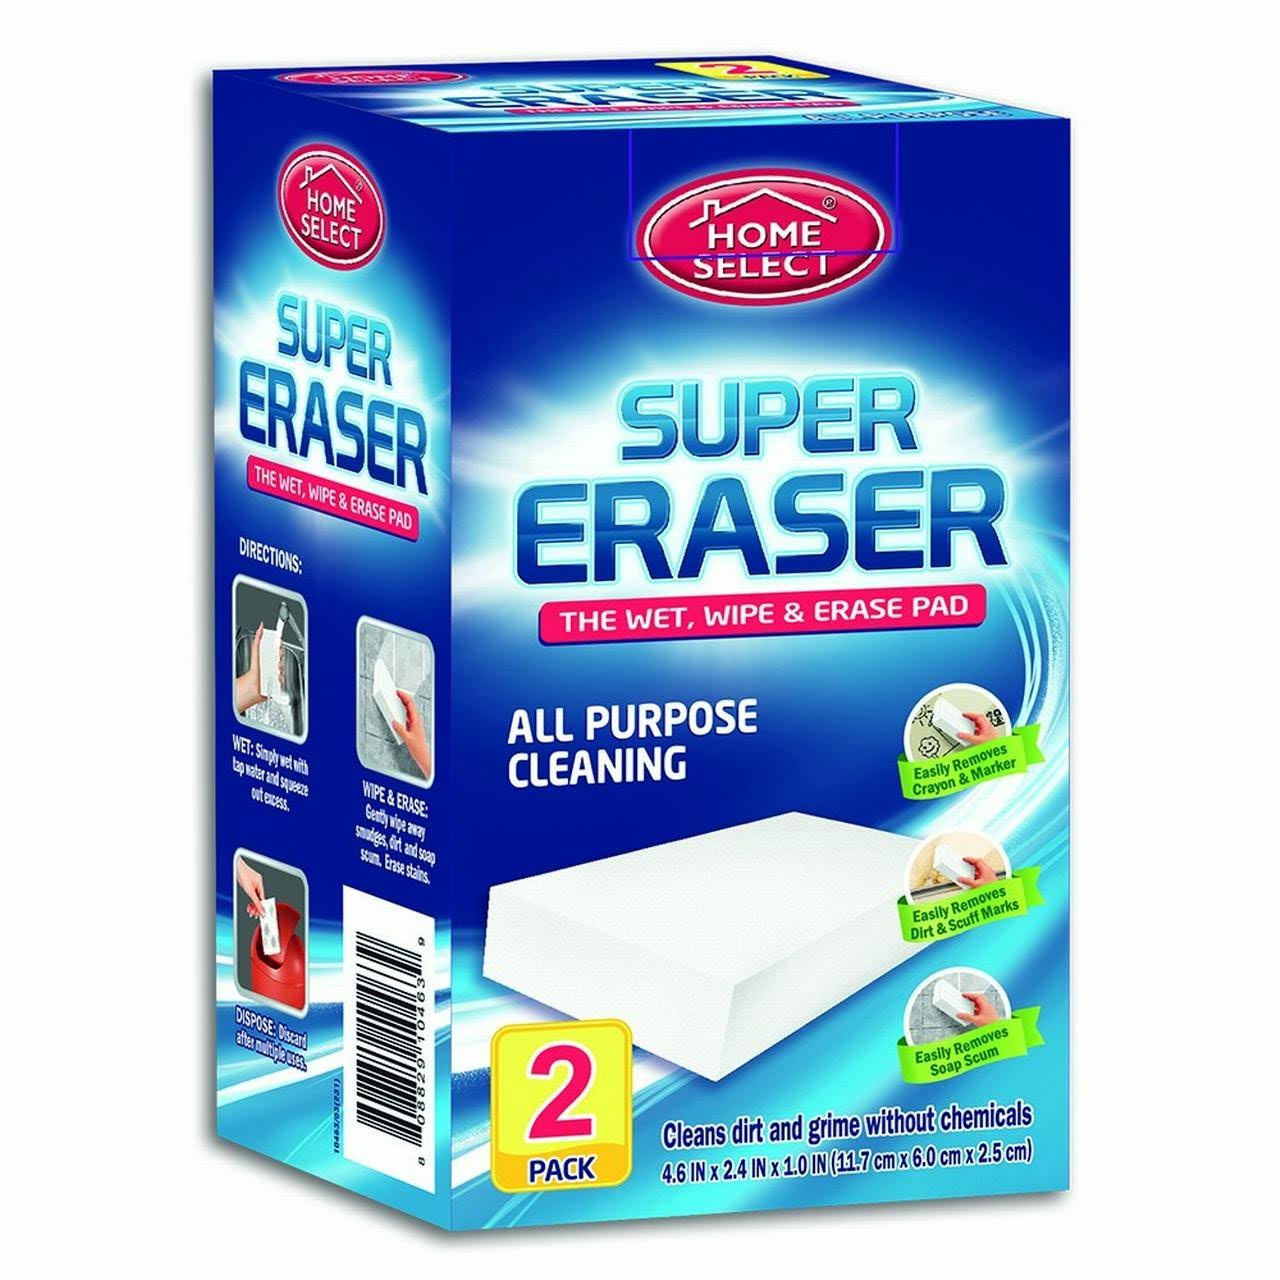 Home Select Super Eraser Cleaning Pads - 12pk